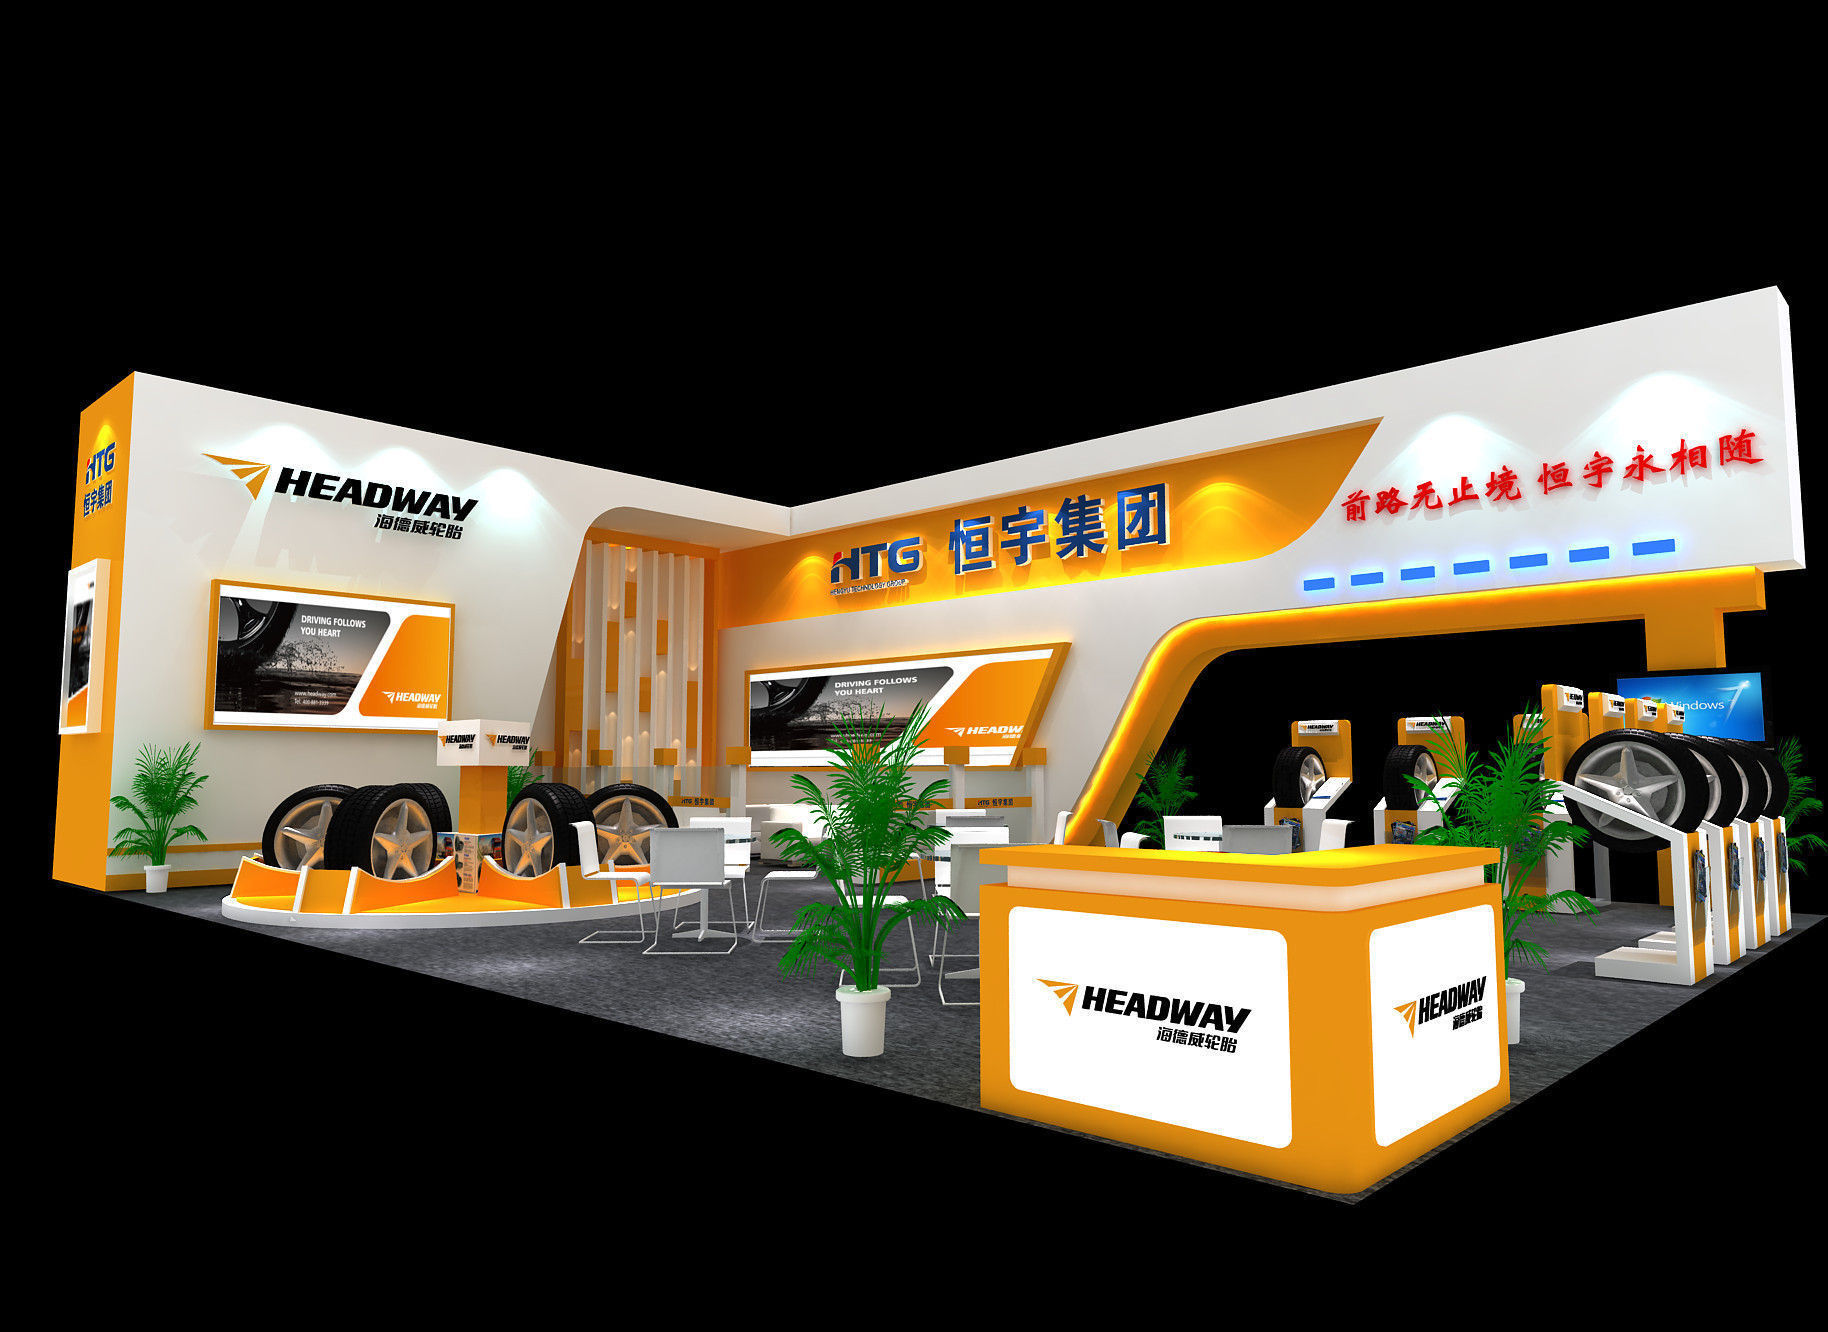 Exhibition area 14x93dmax2011 24385 3d model max for Area933